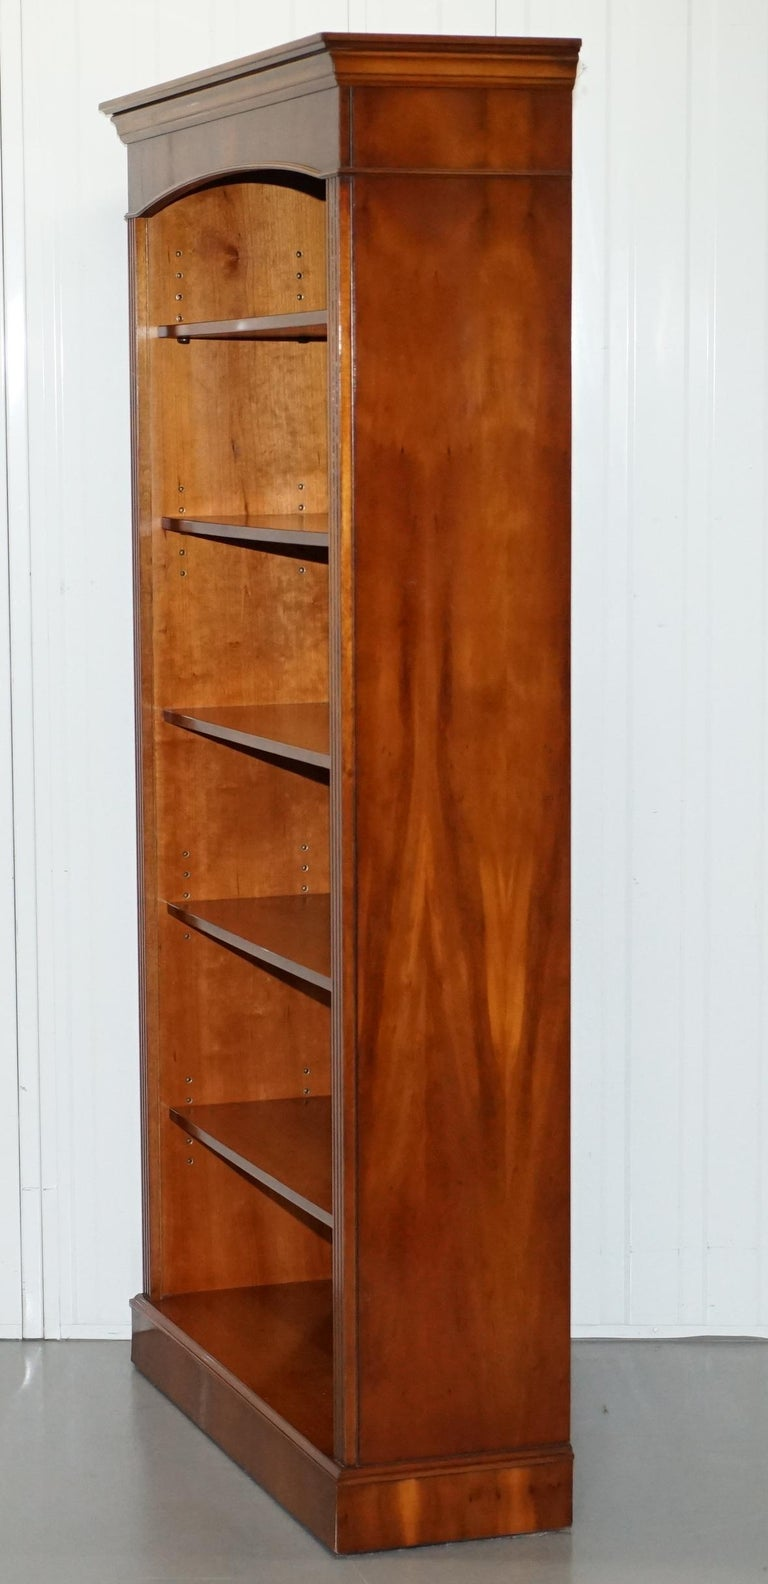 Lovely Burr Yew Wood Library Legal Bookcase with Height Adjustable Shelves For Sale 8